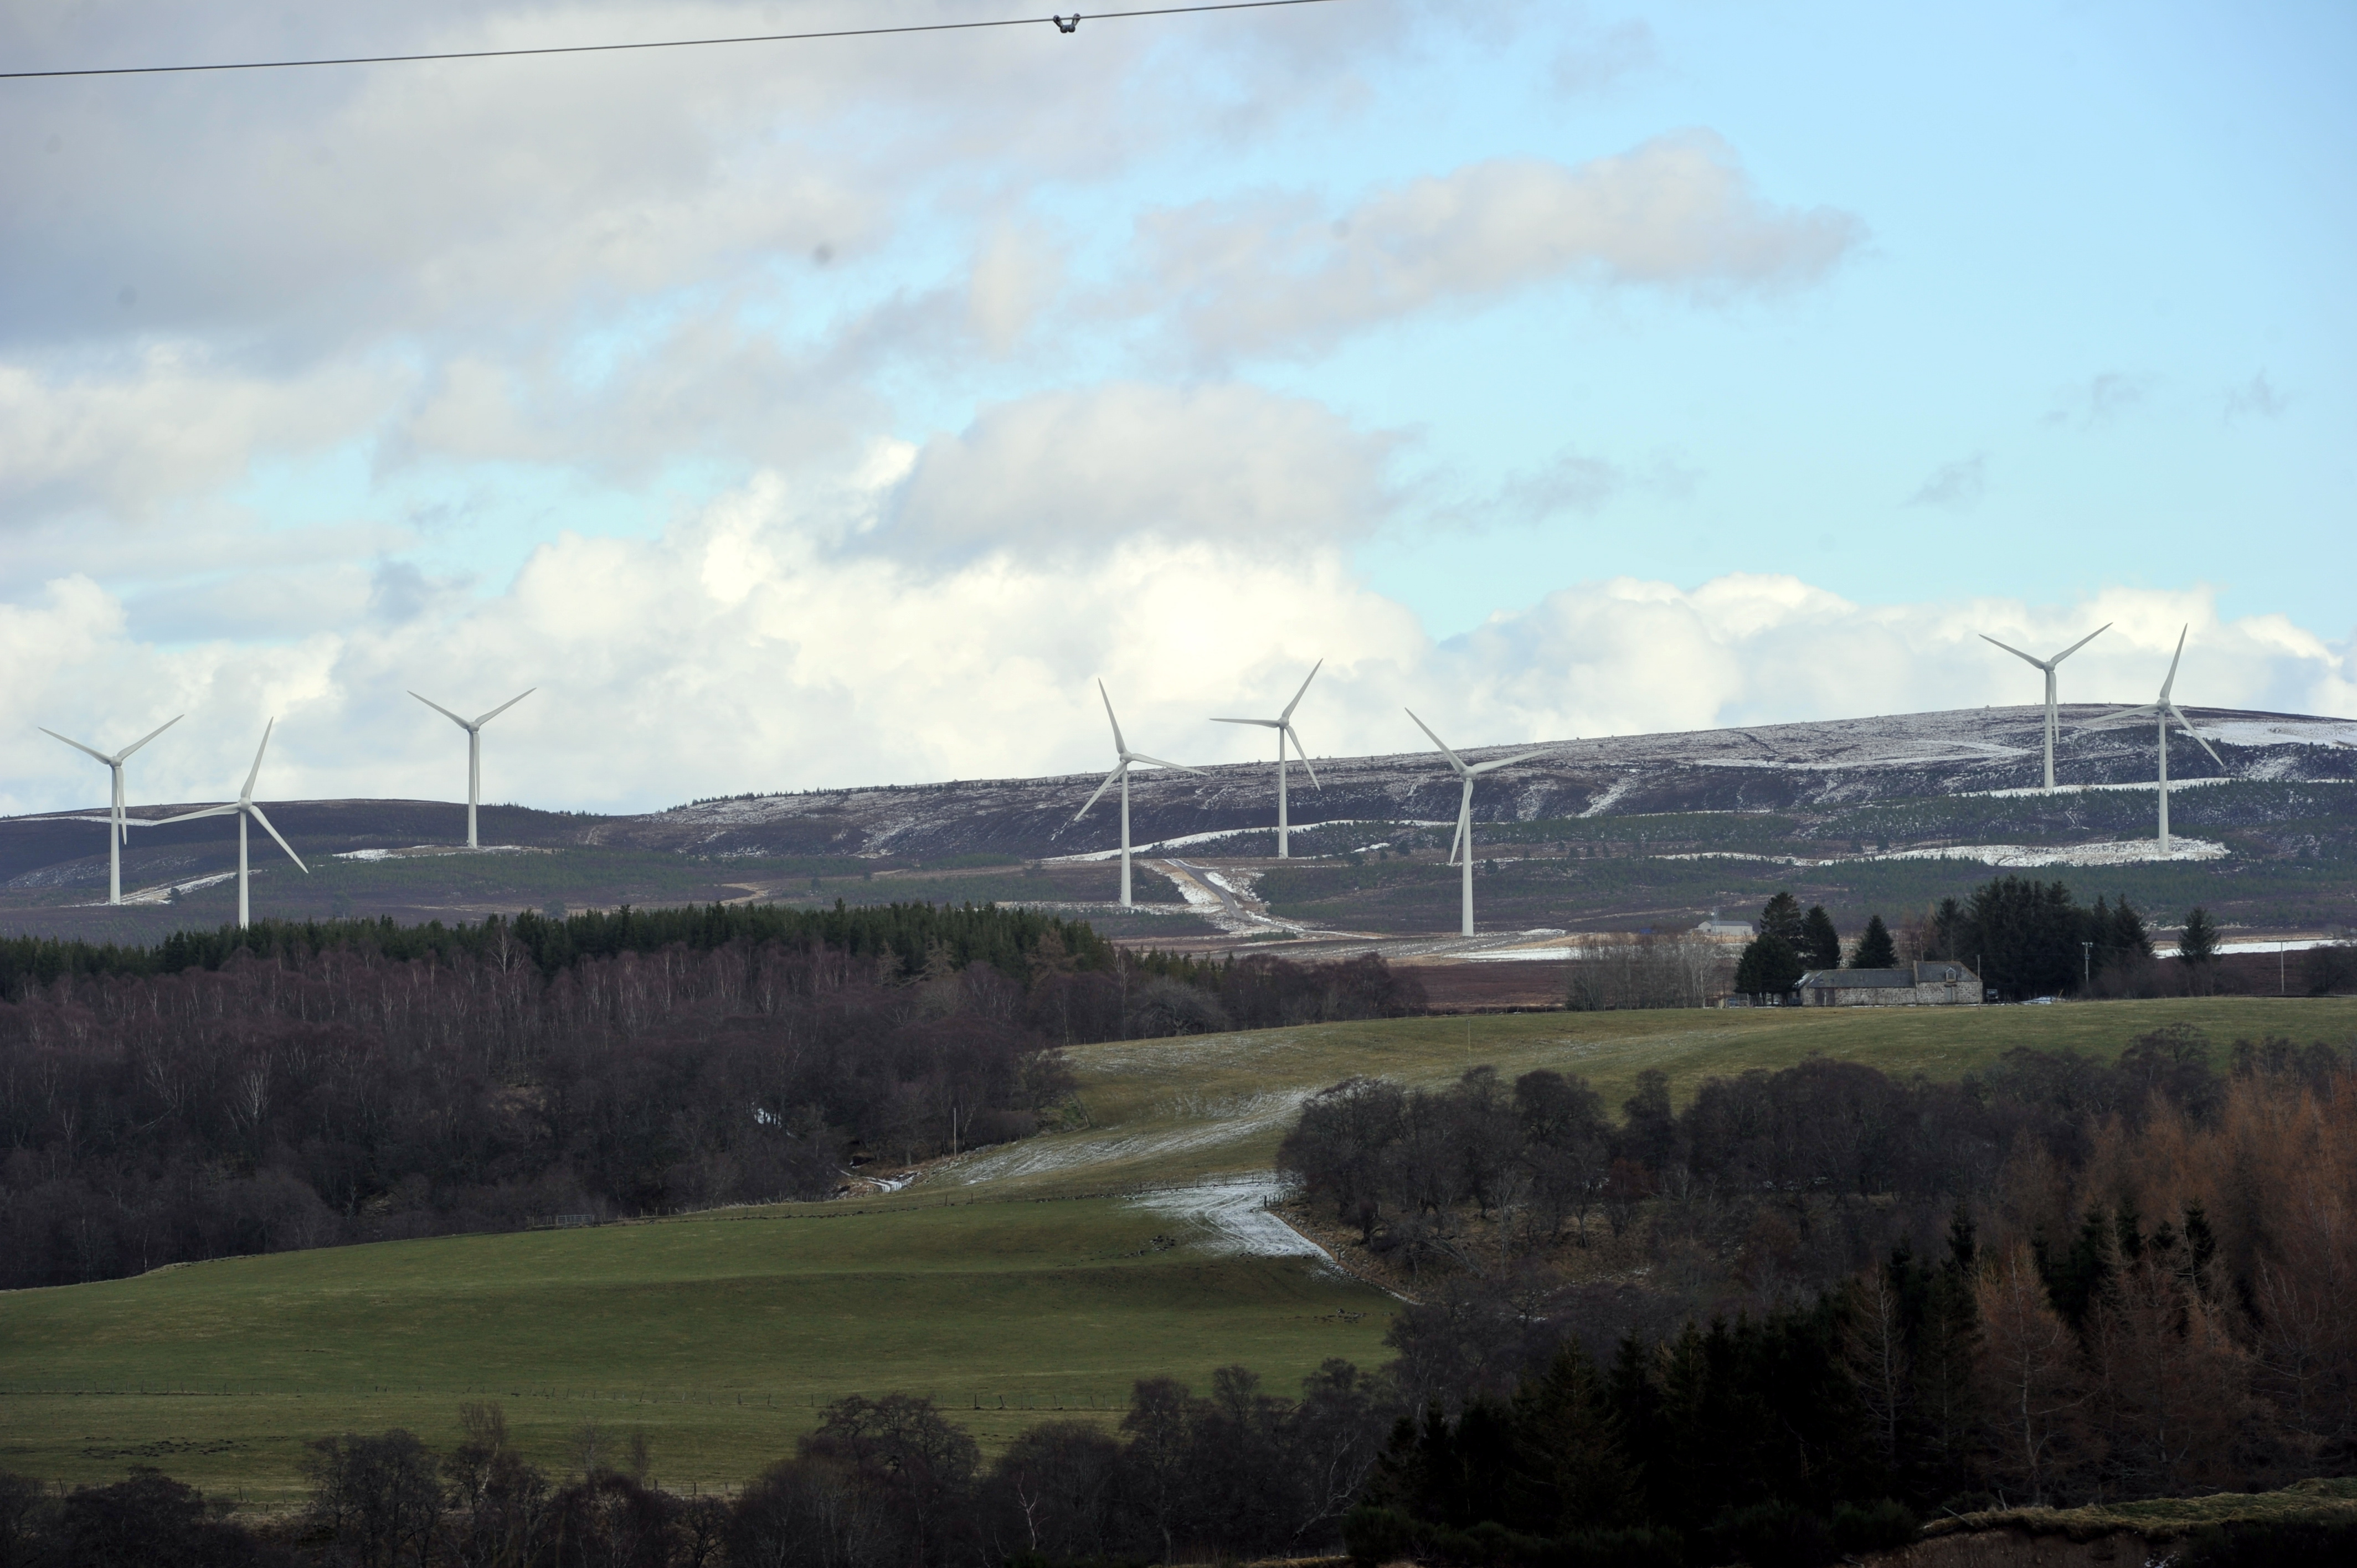 The Berry Burn wind farm currently has 29 turbines.